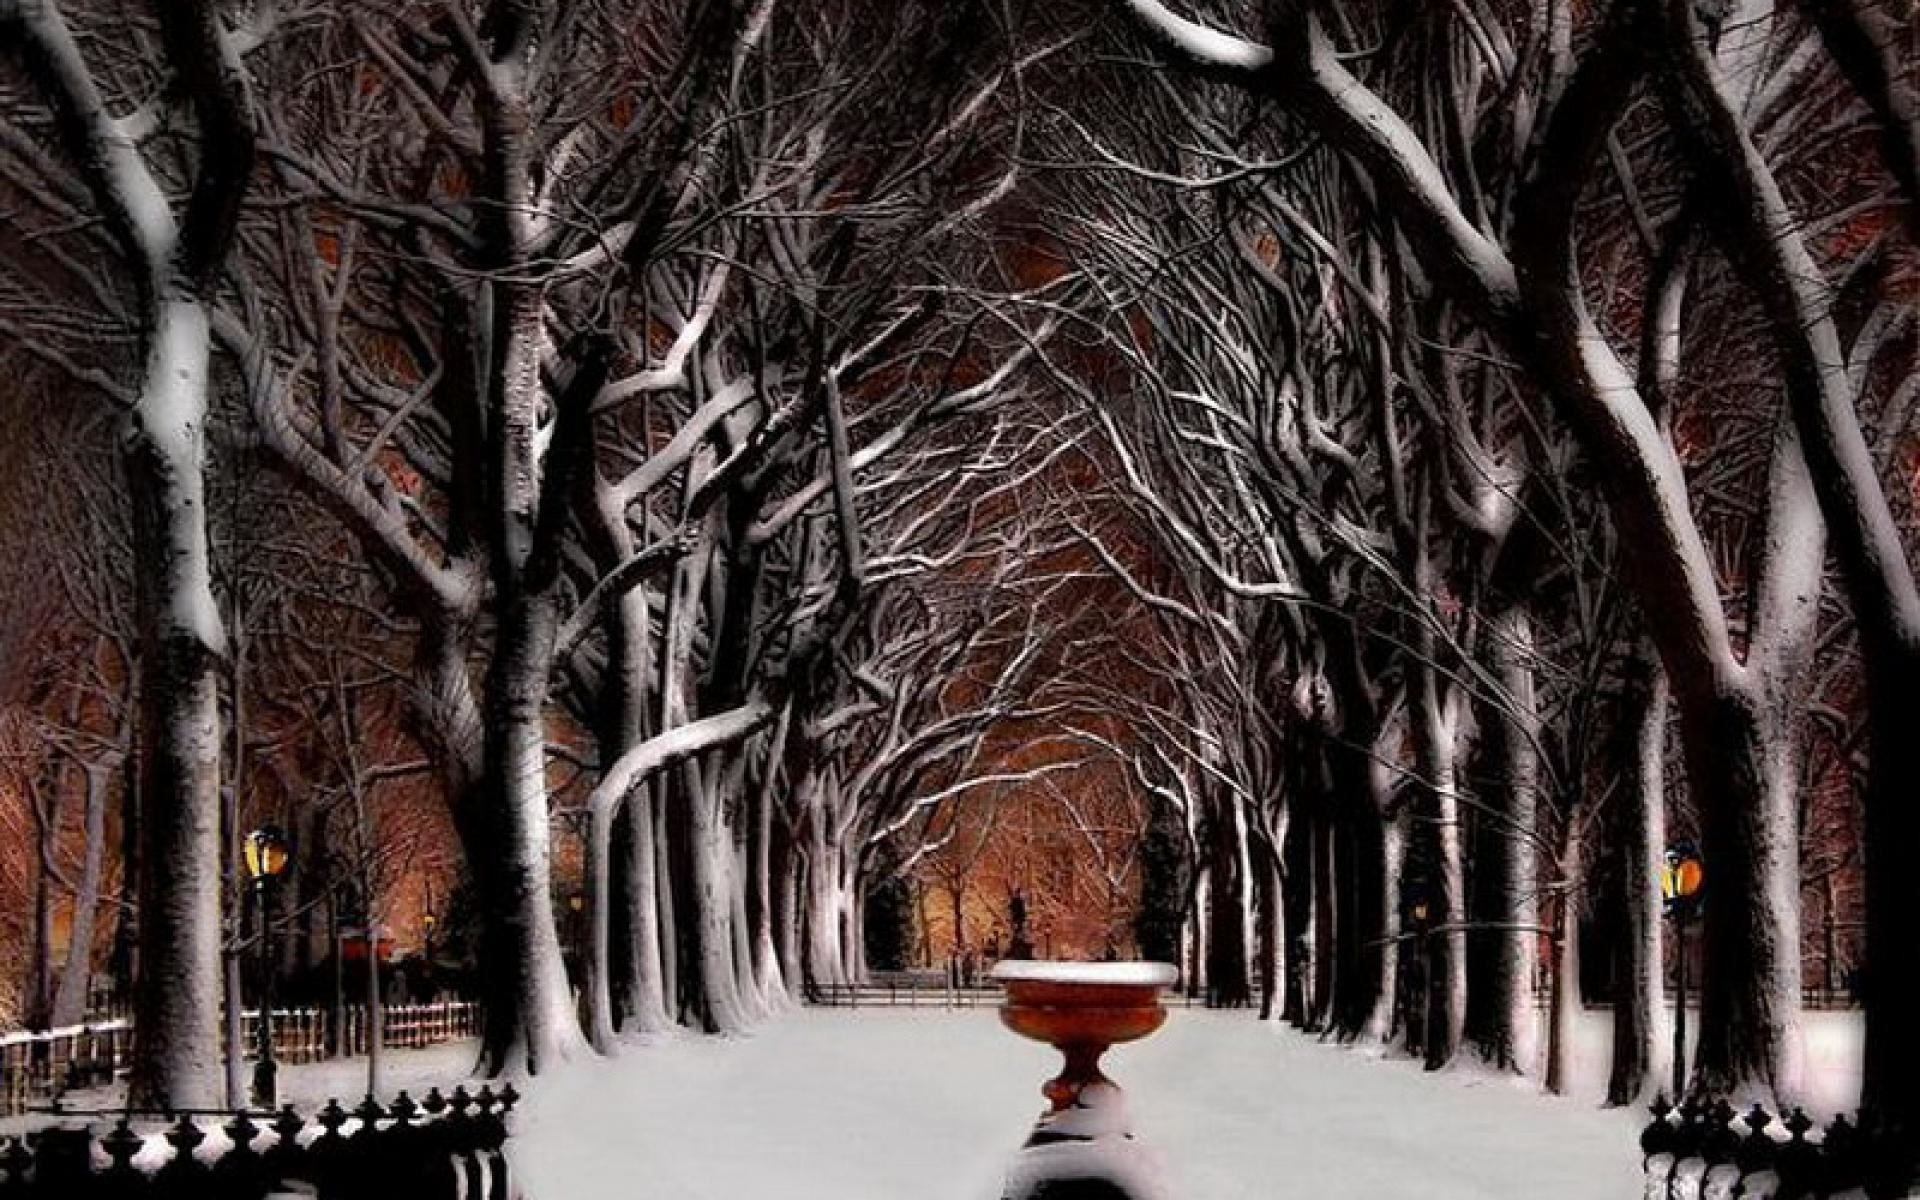 1920x1200 Snow, Central Park Winter, Fountain, New York, Trees, United States.